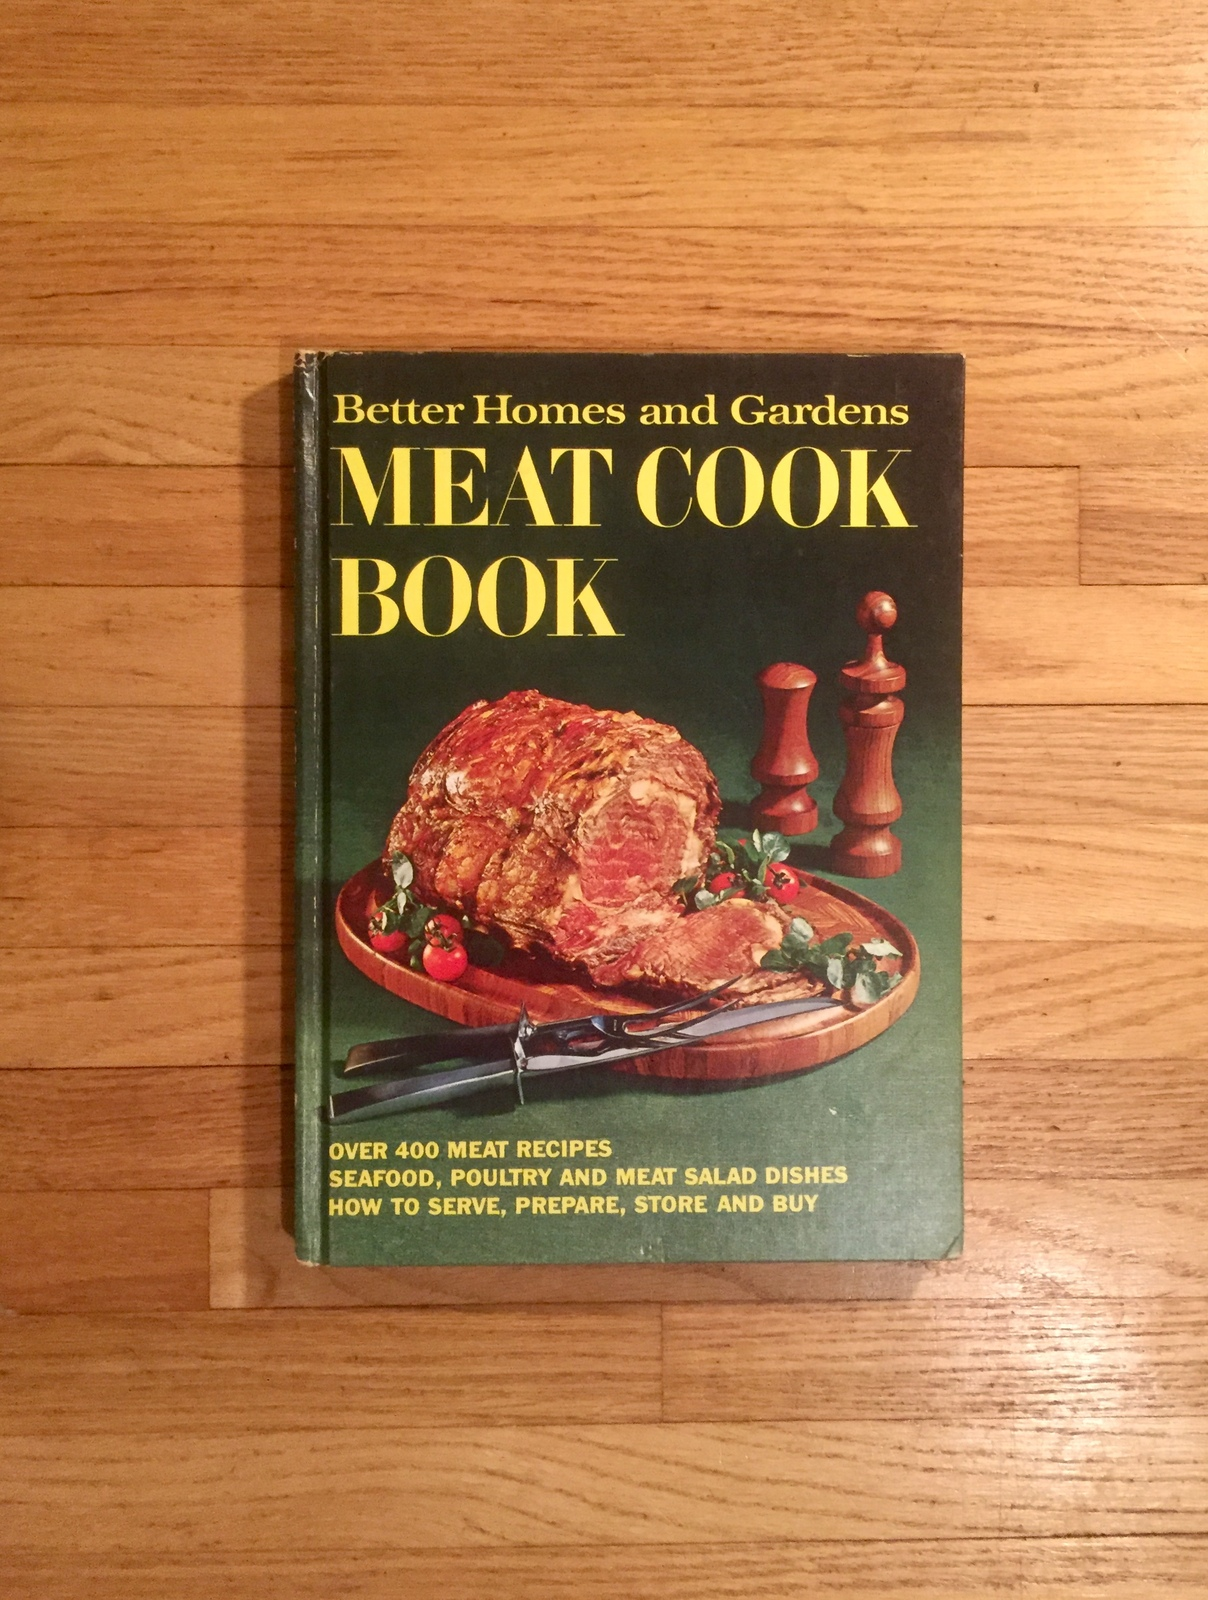 Vintage 1970 Better Homes and Gardens Meat Cook Book- hardcover